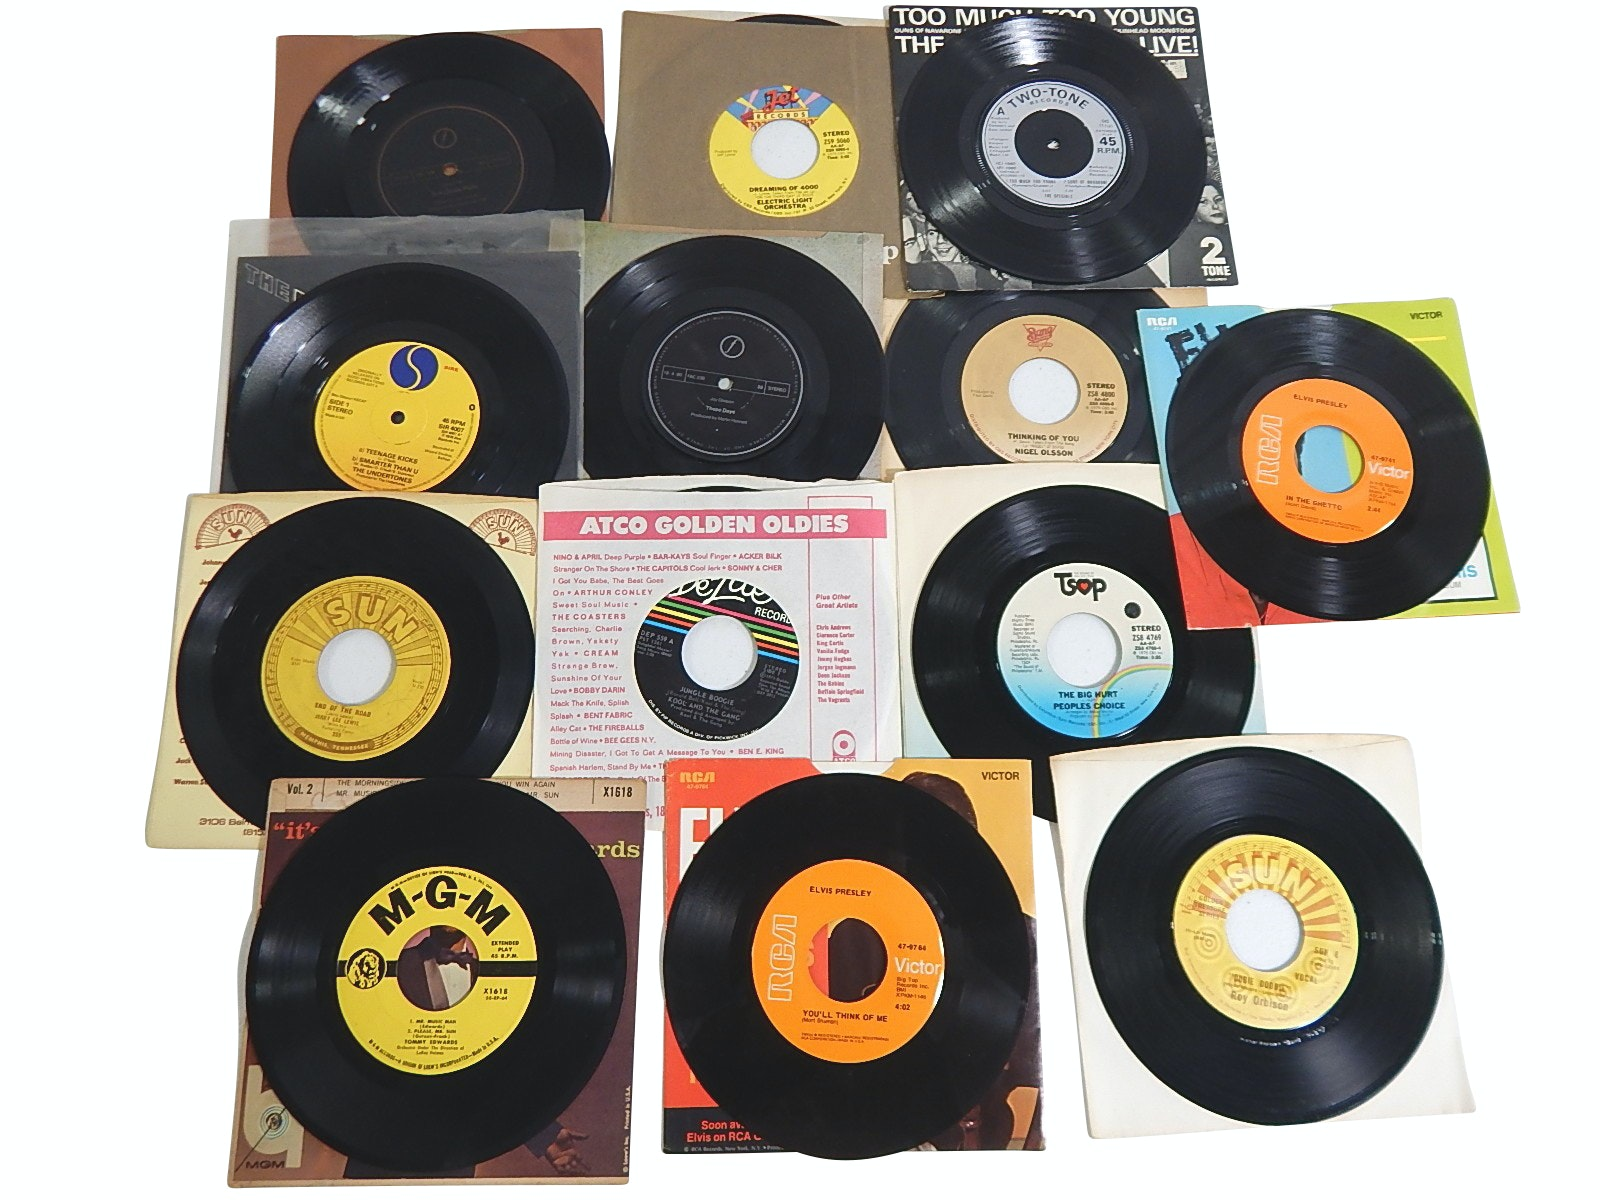 45 RPM Records with Jerry Lee Lewis on Sun Records, Elvis Presley, Roy Orbison